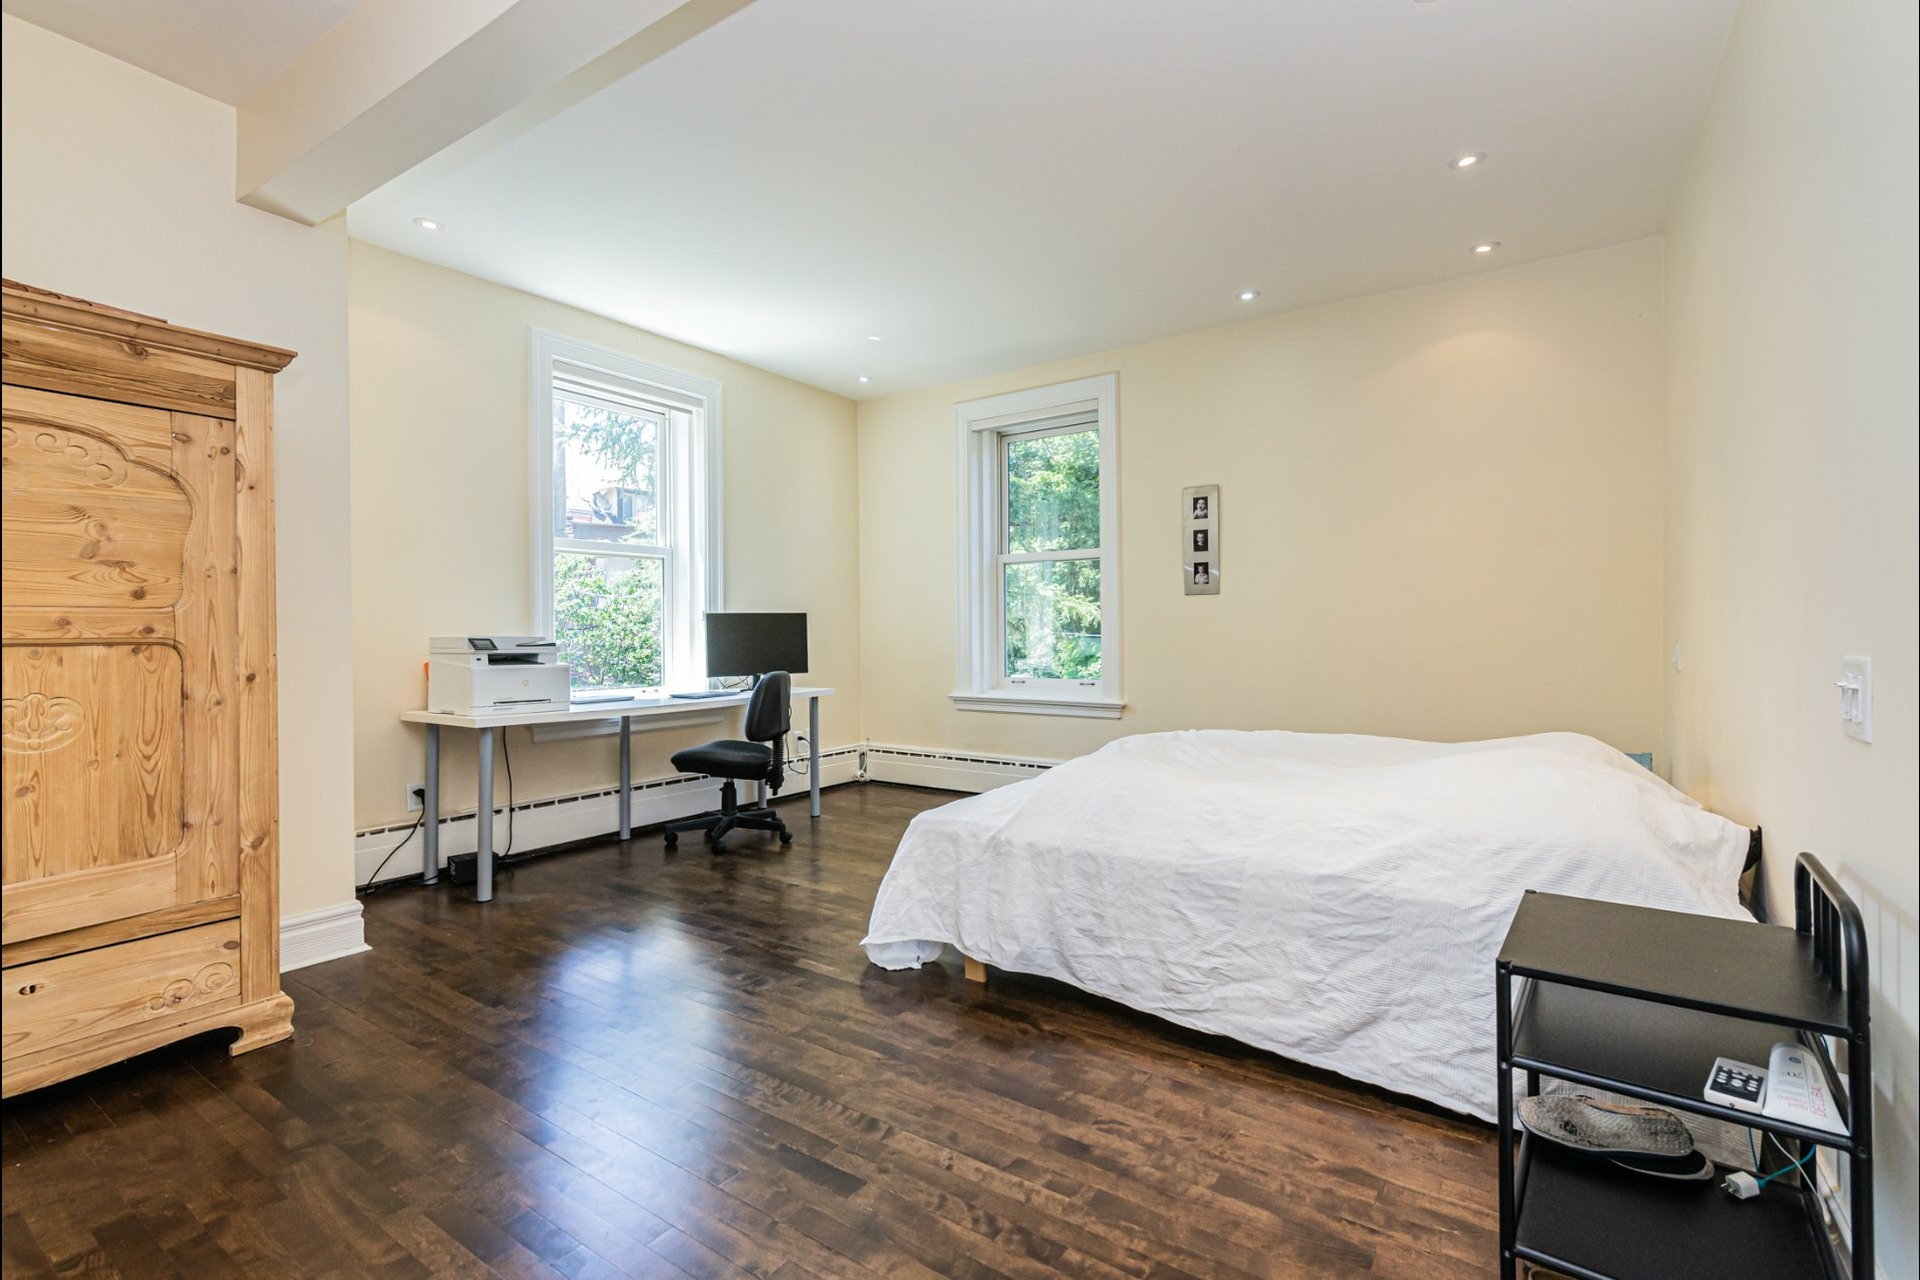 image 19 - House For rent Westmount - 8 rooms